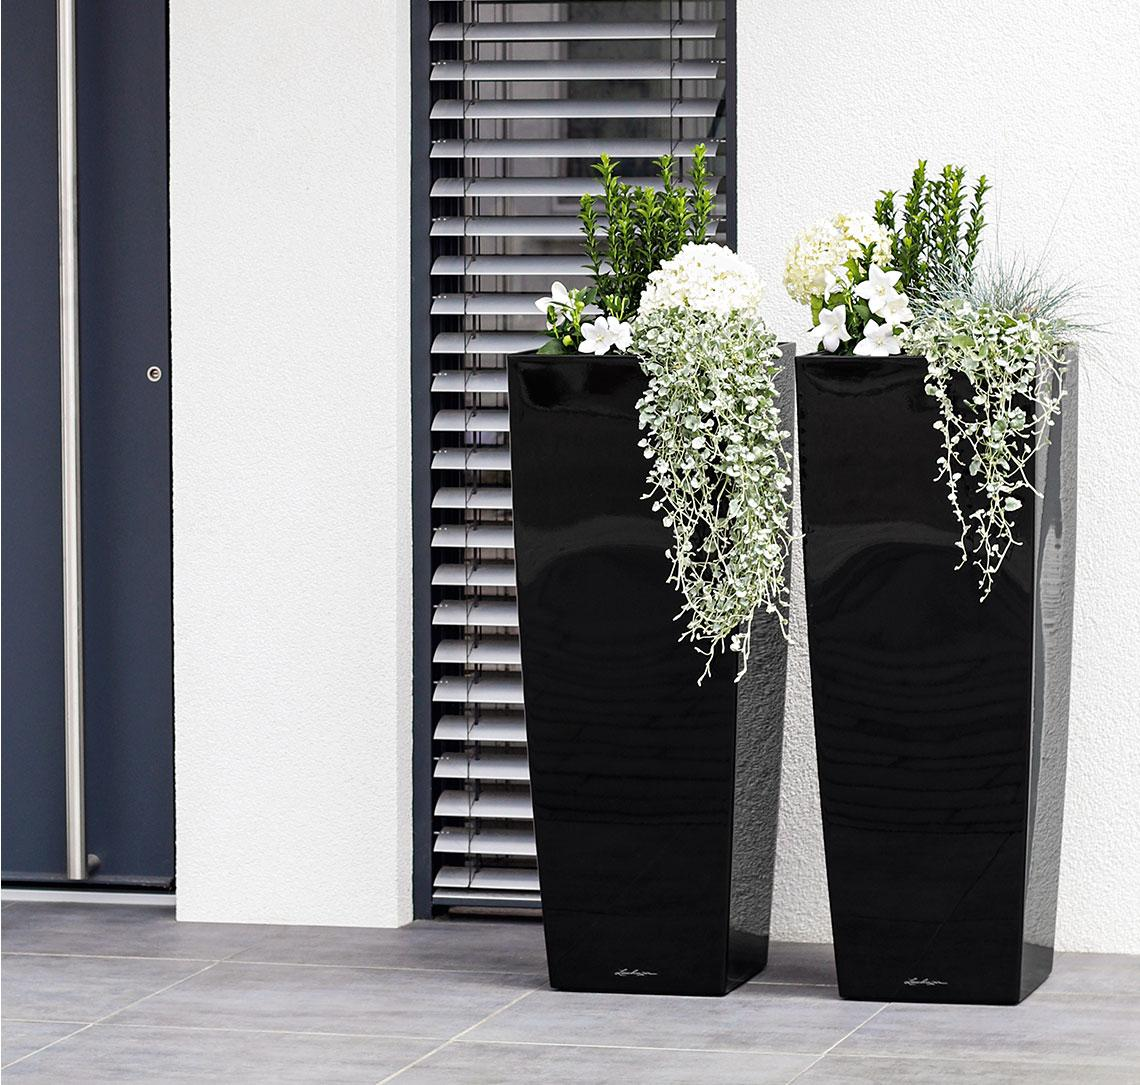 Two CUBICO Alto in high-gloss black with modern white-green planting stand in front of a modern house